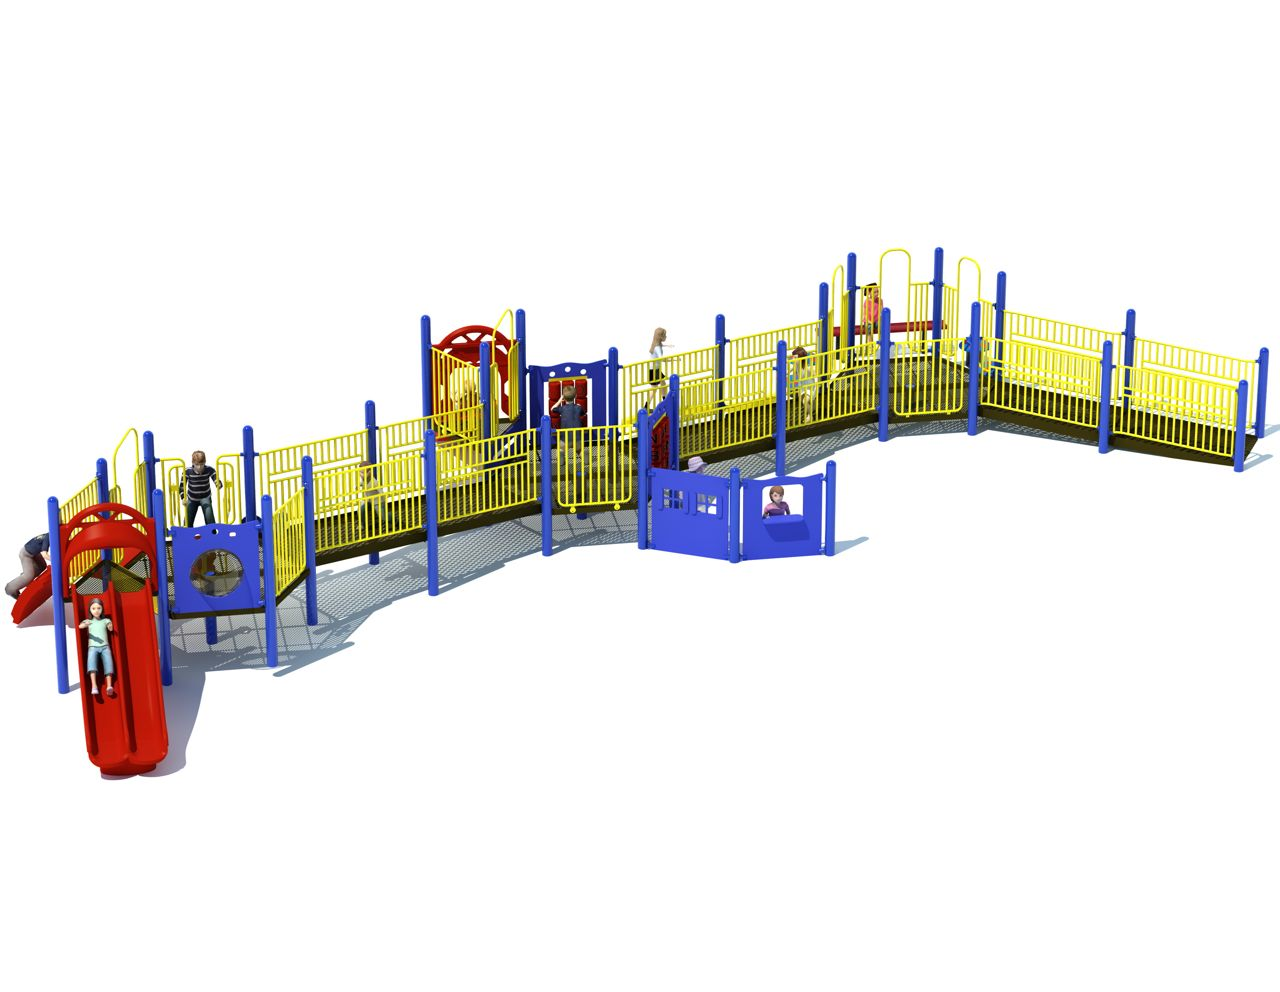 Shining Mountain Play System: Sii